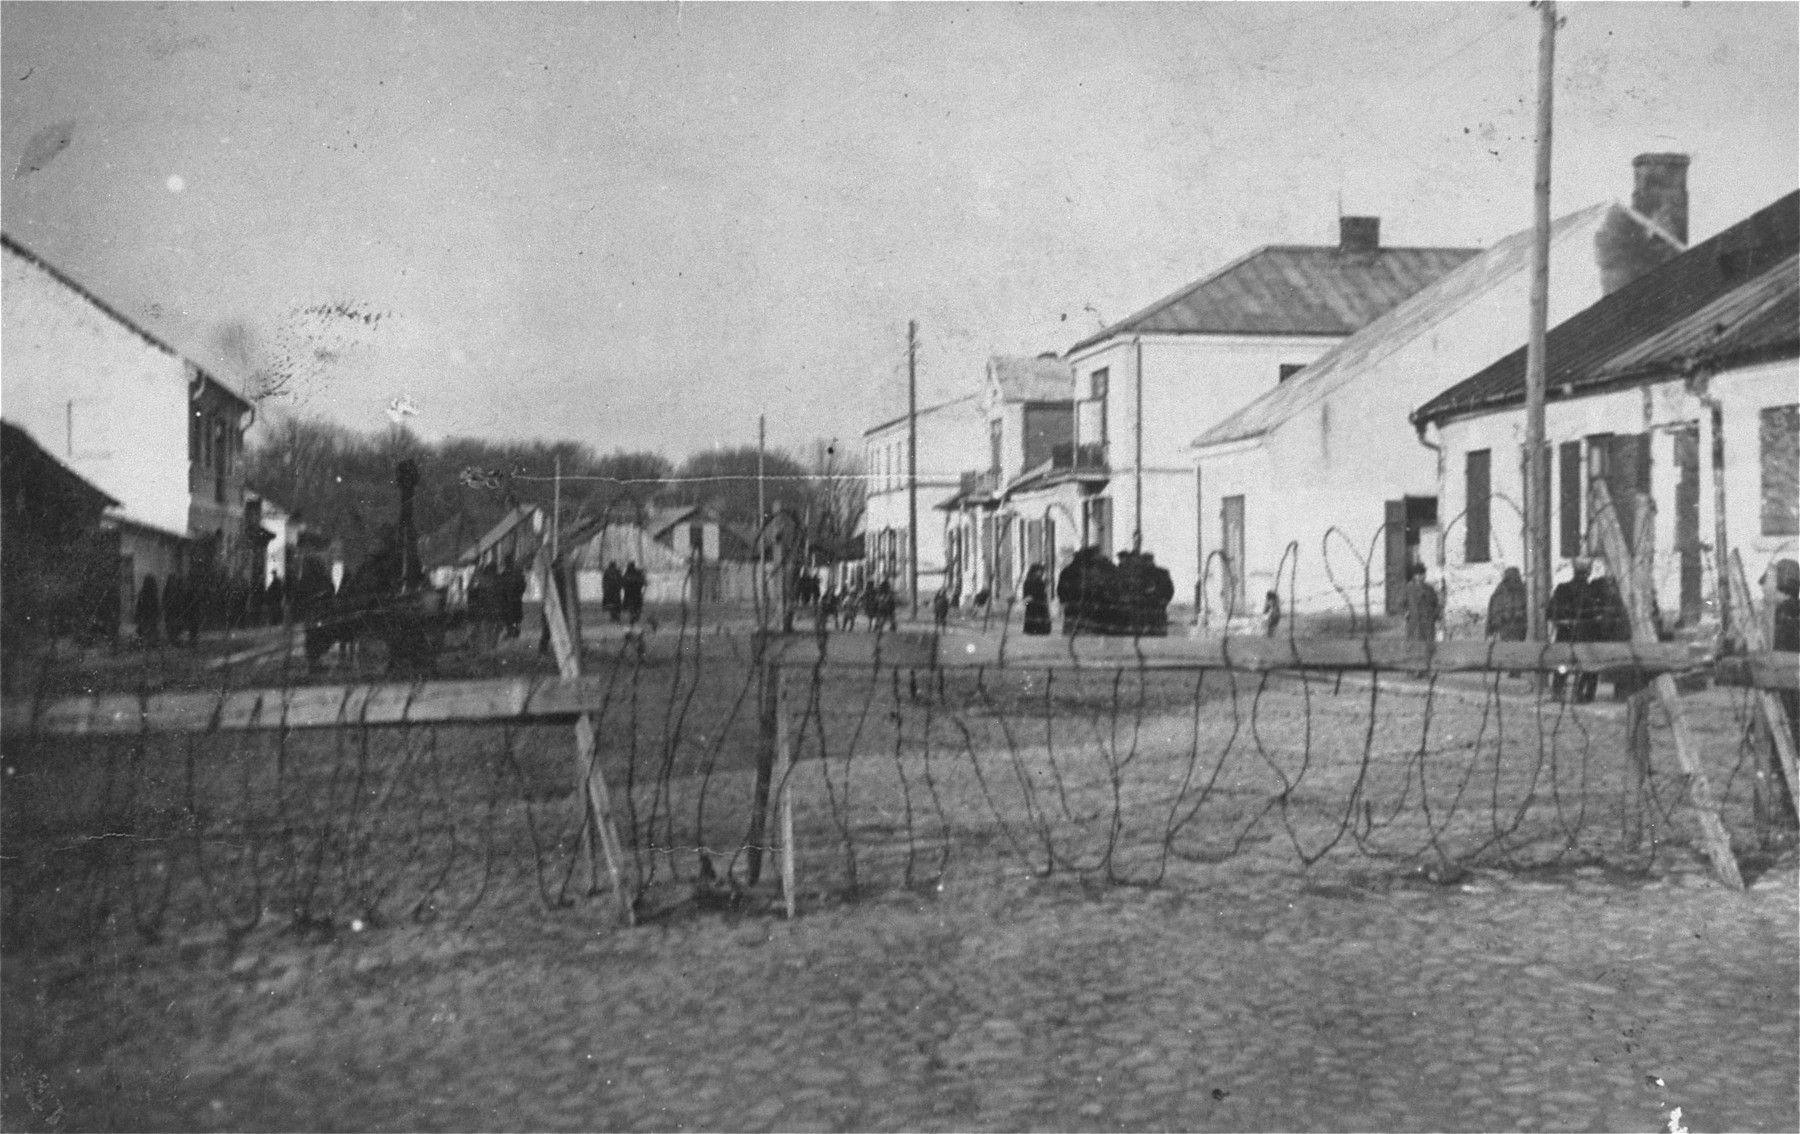 View of the Kozienice ghetto through the barbed wire fence that encloses it.